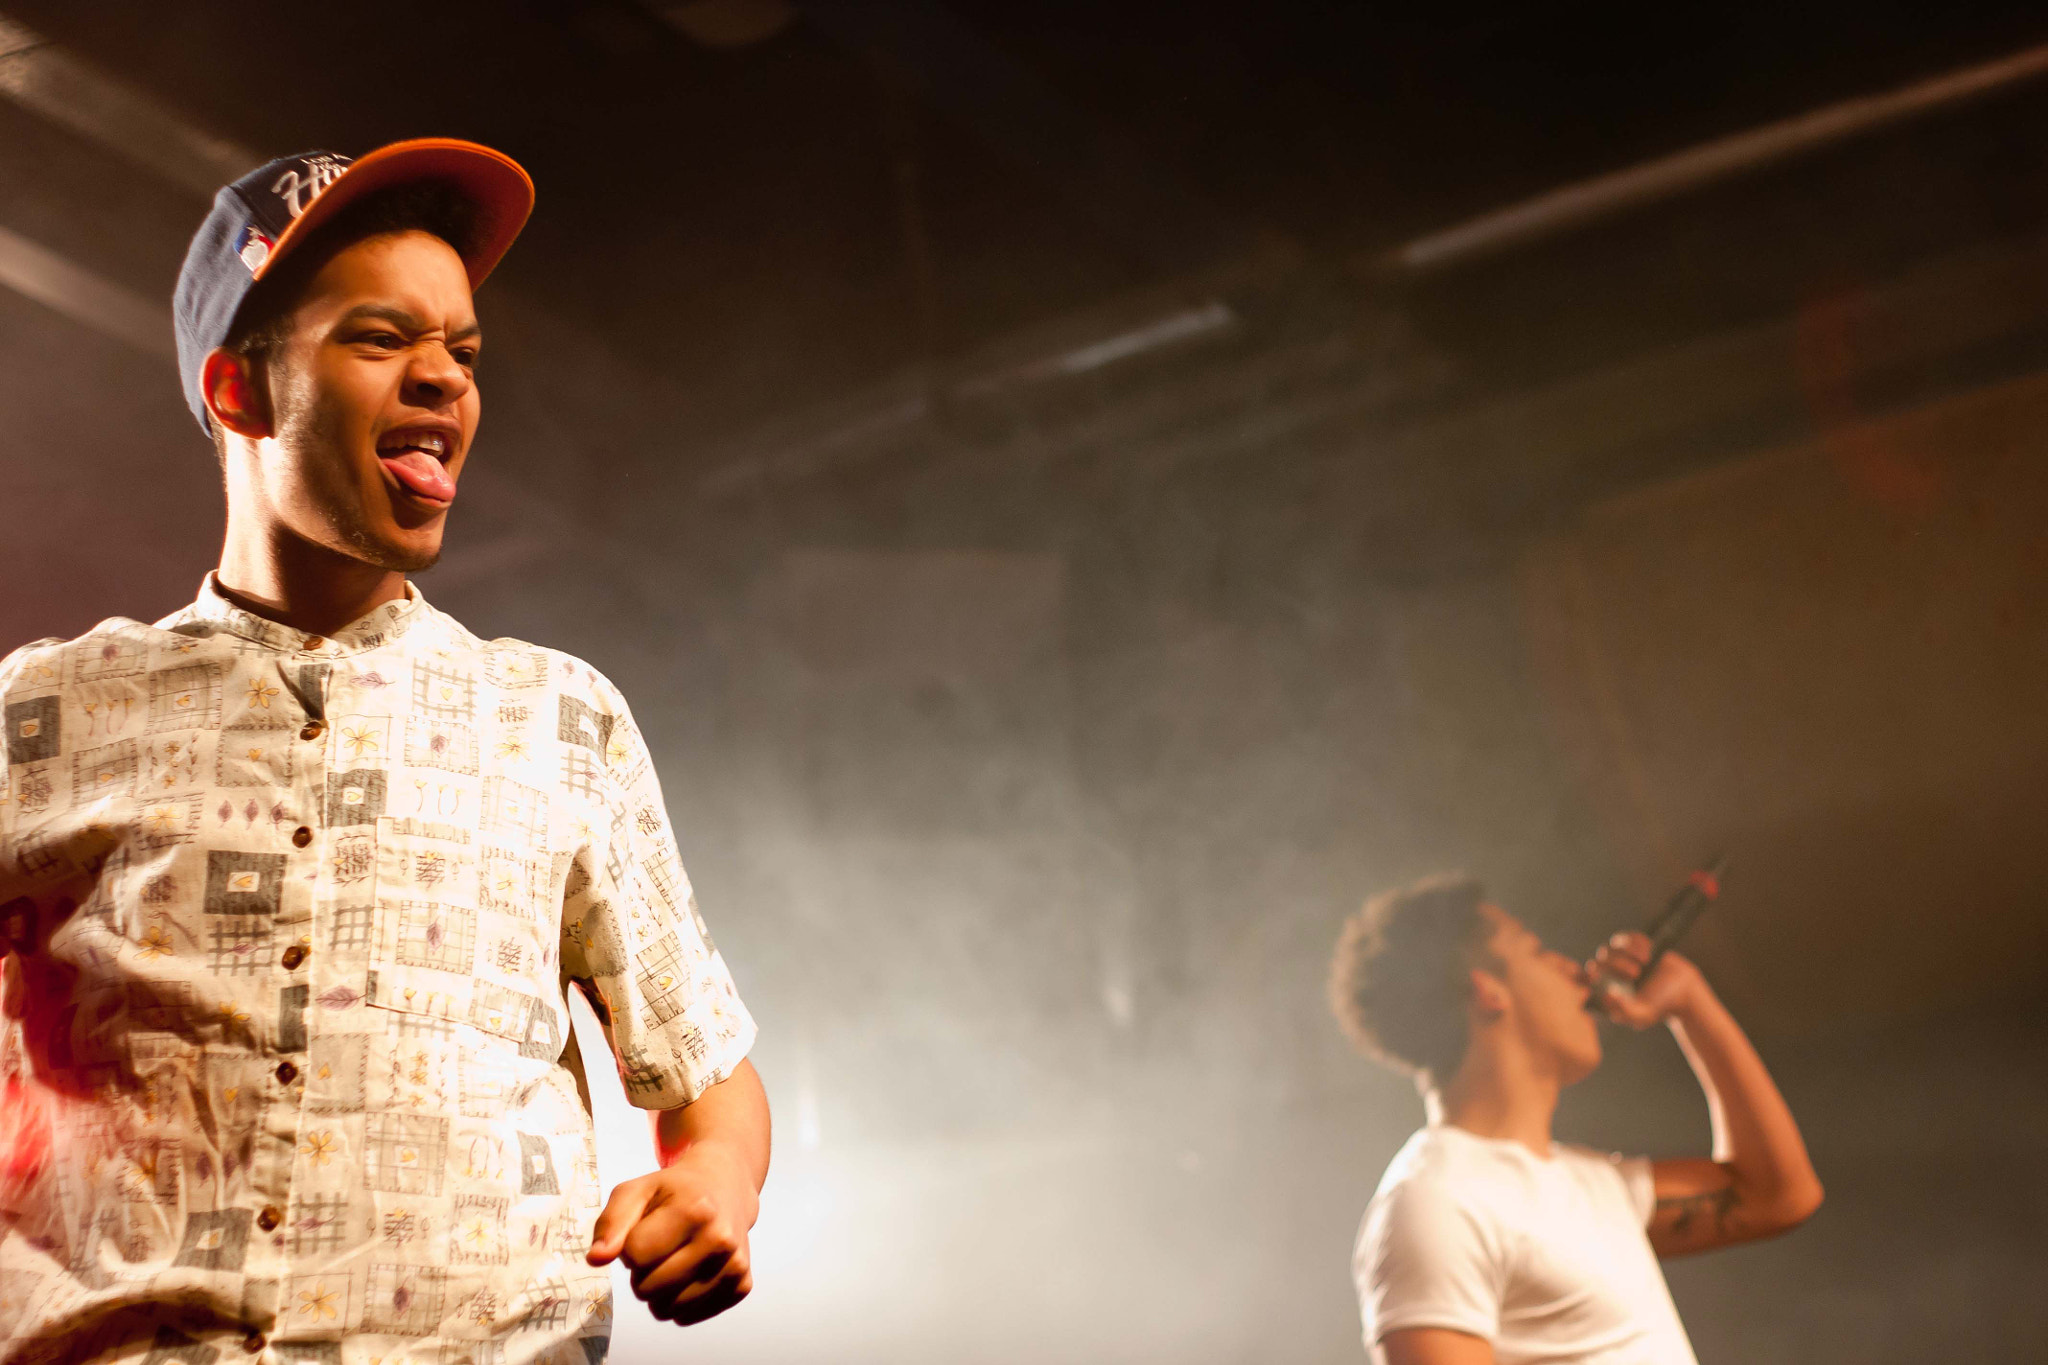 Photograph Rizzle Kicks by Kirsty Burge on 500px